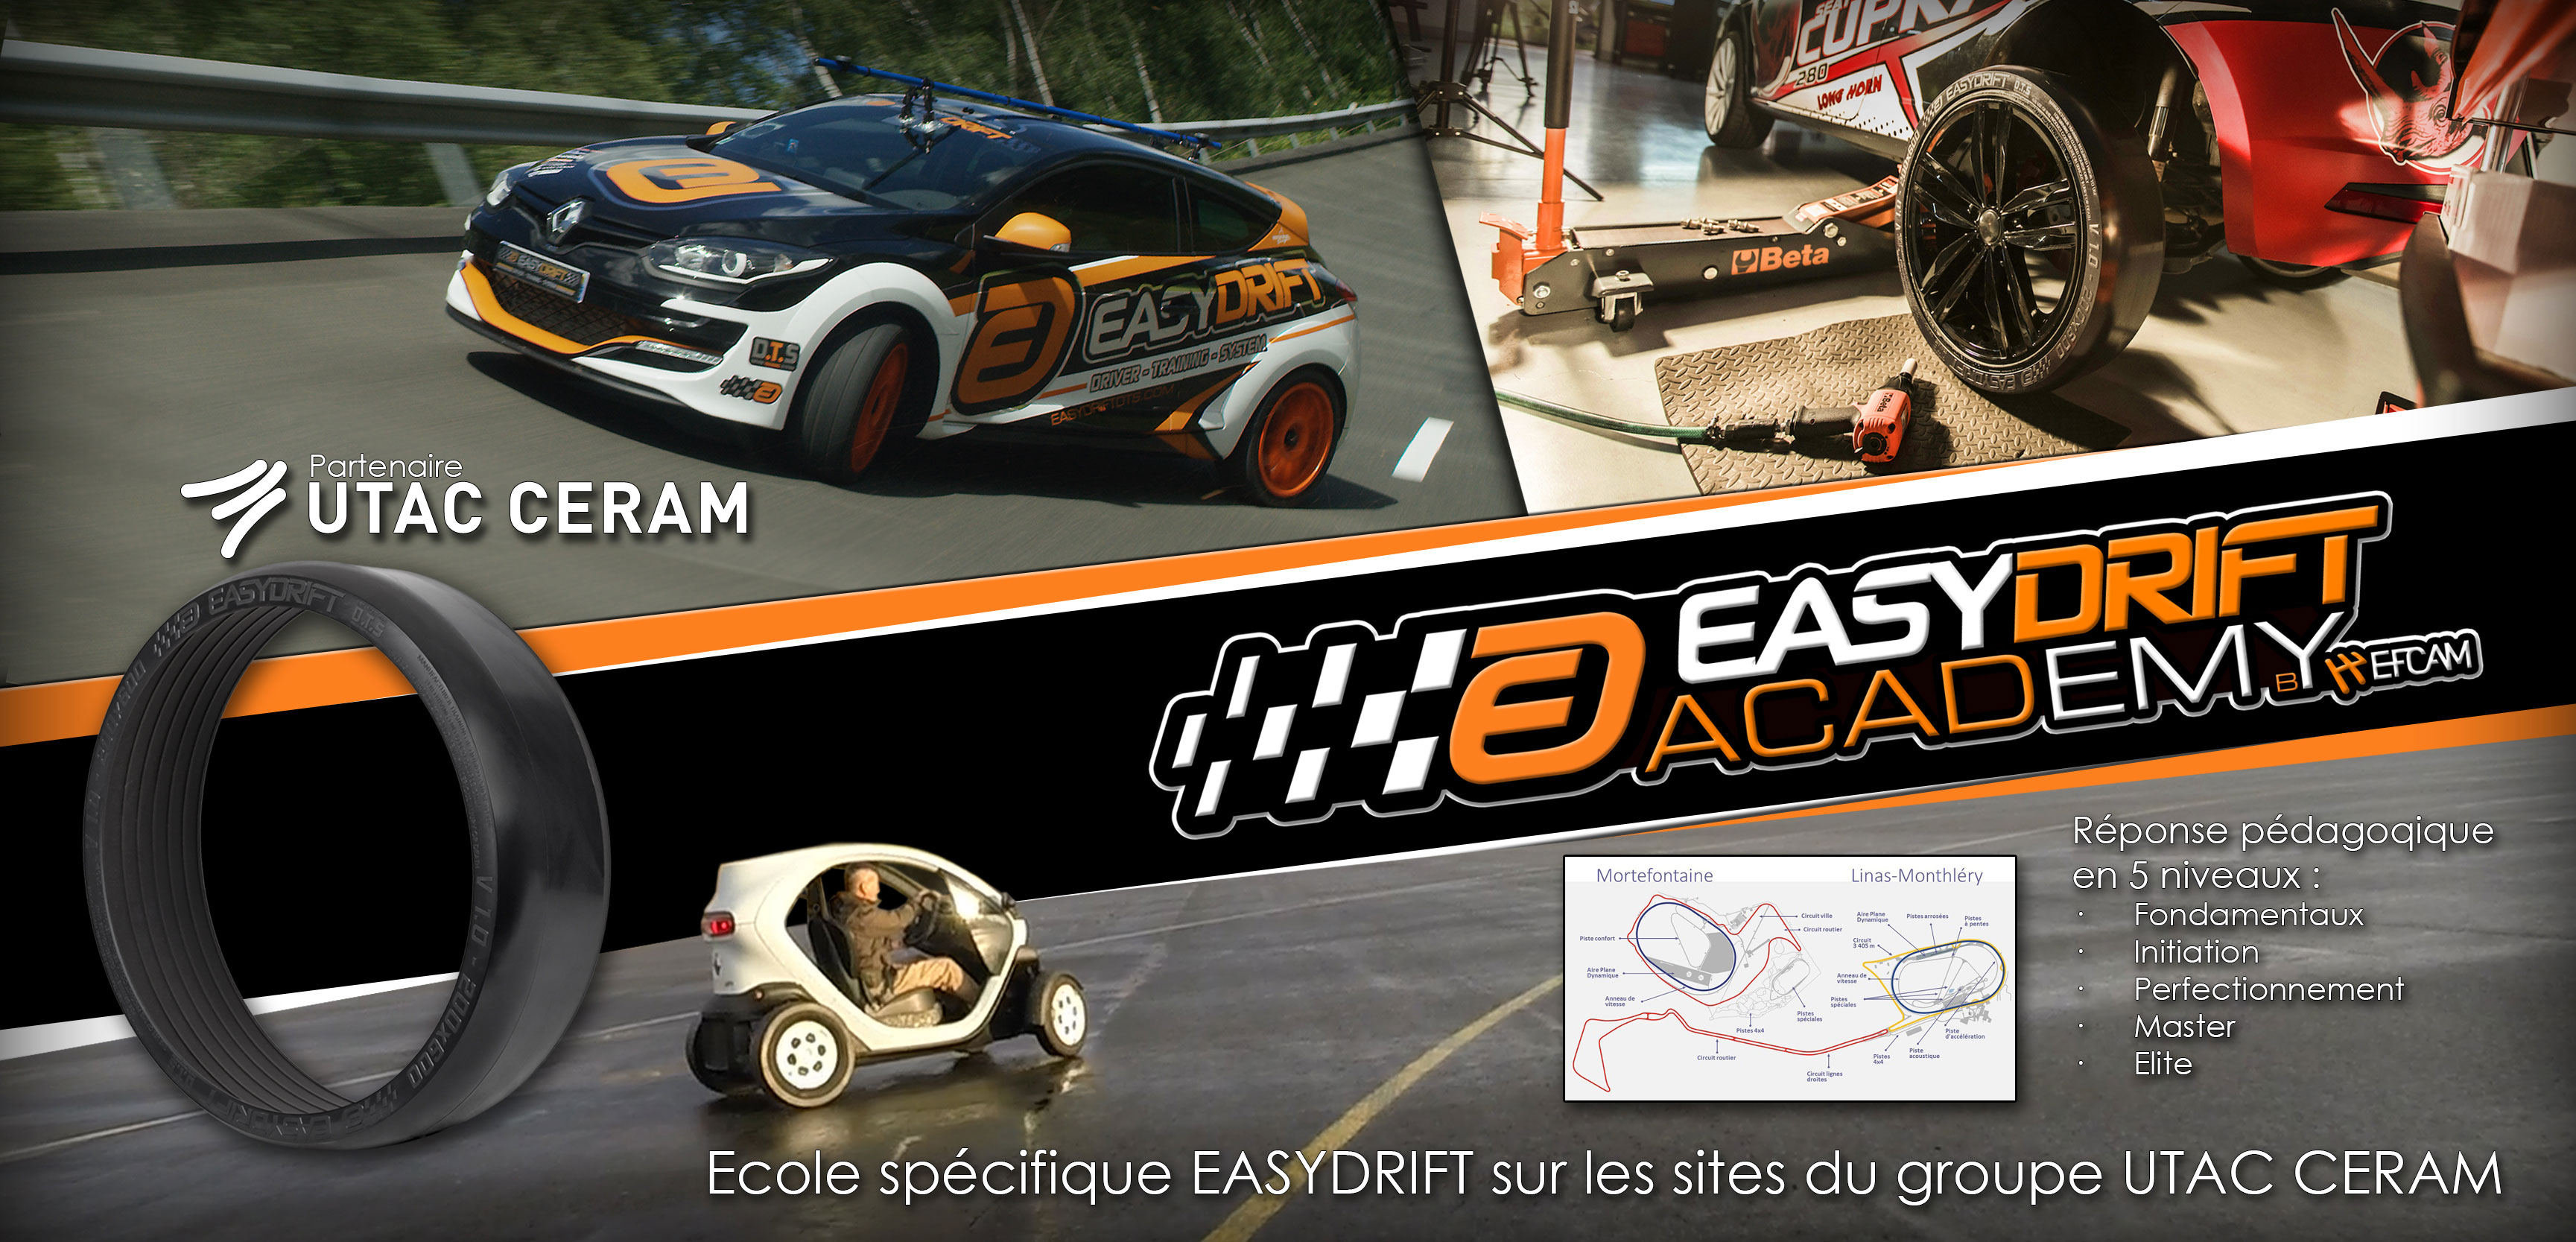 EASYDRIFT ACADEMY annonce2